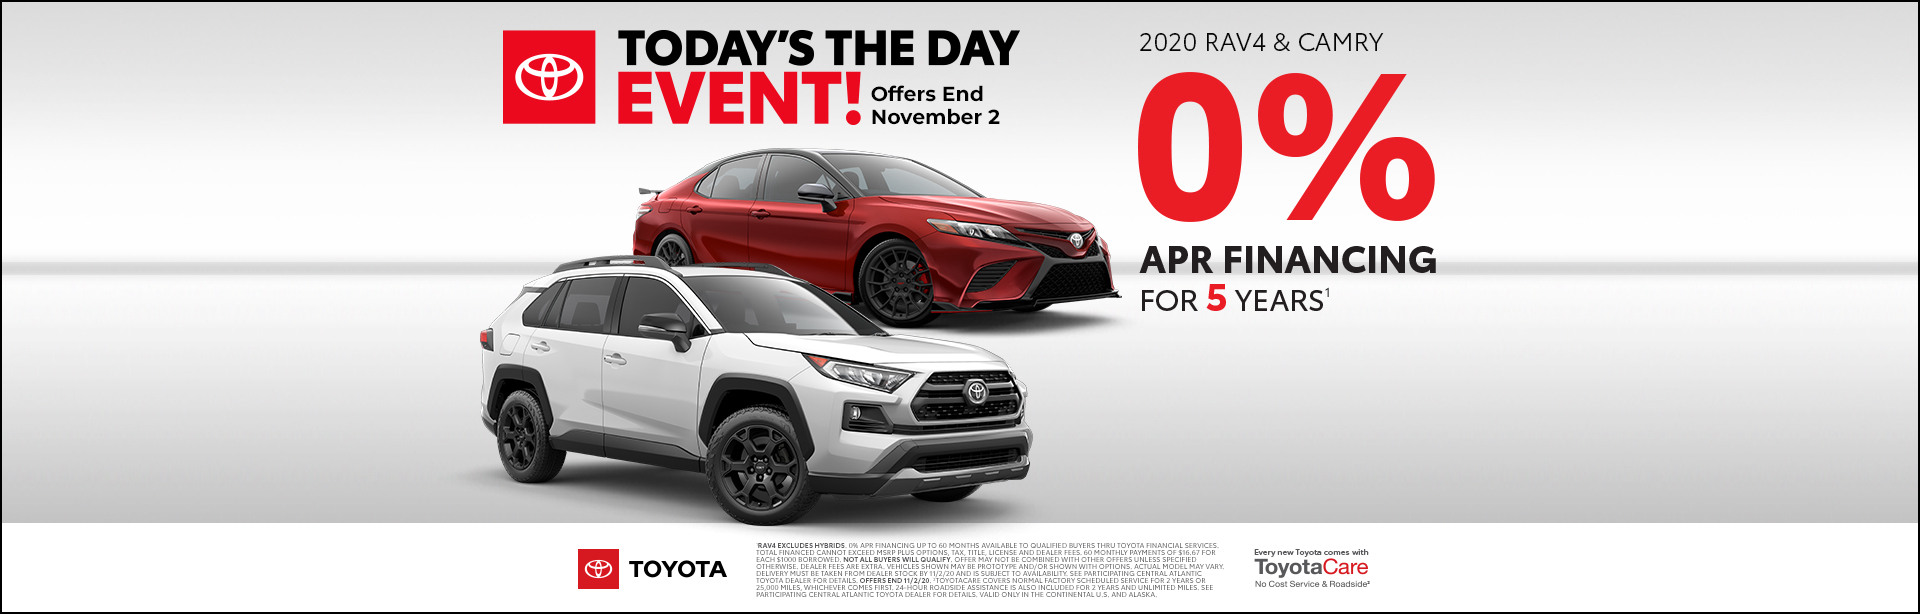 10-20_01_CAT-October-2020-CAT-TTD_1920x614_03ad_Camry-RAV4_R_xta.jpeg